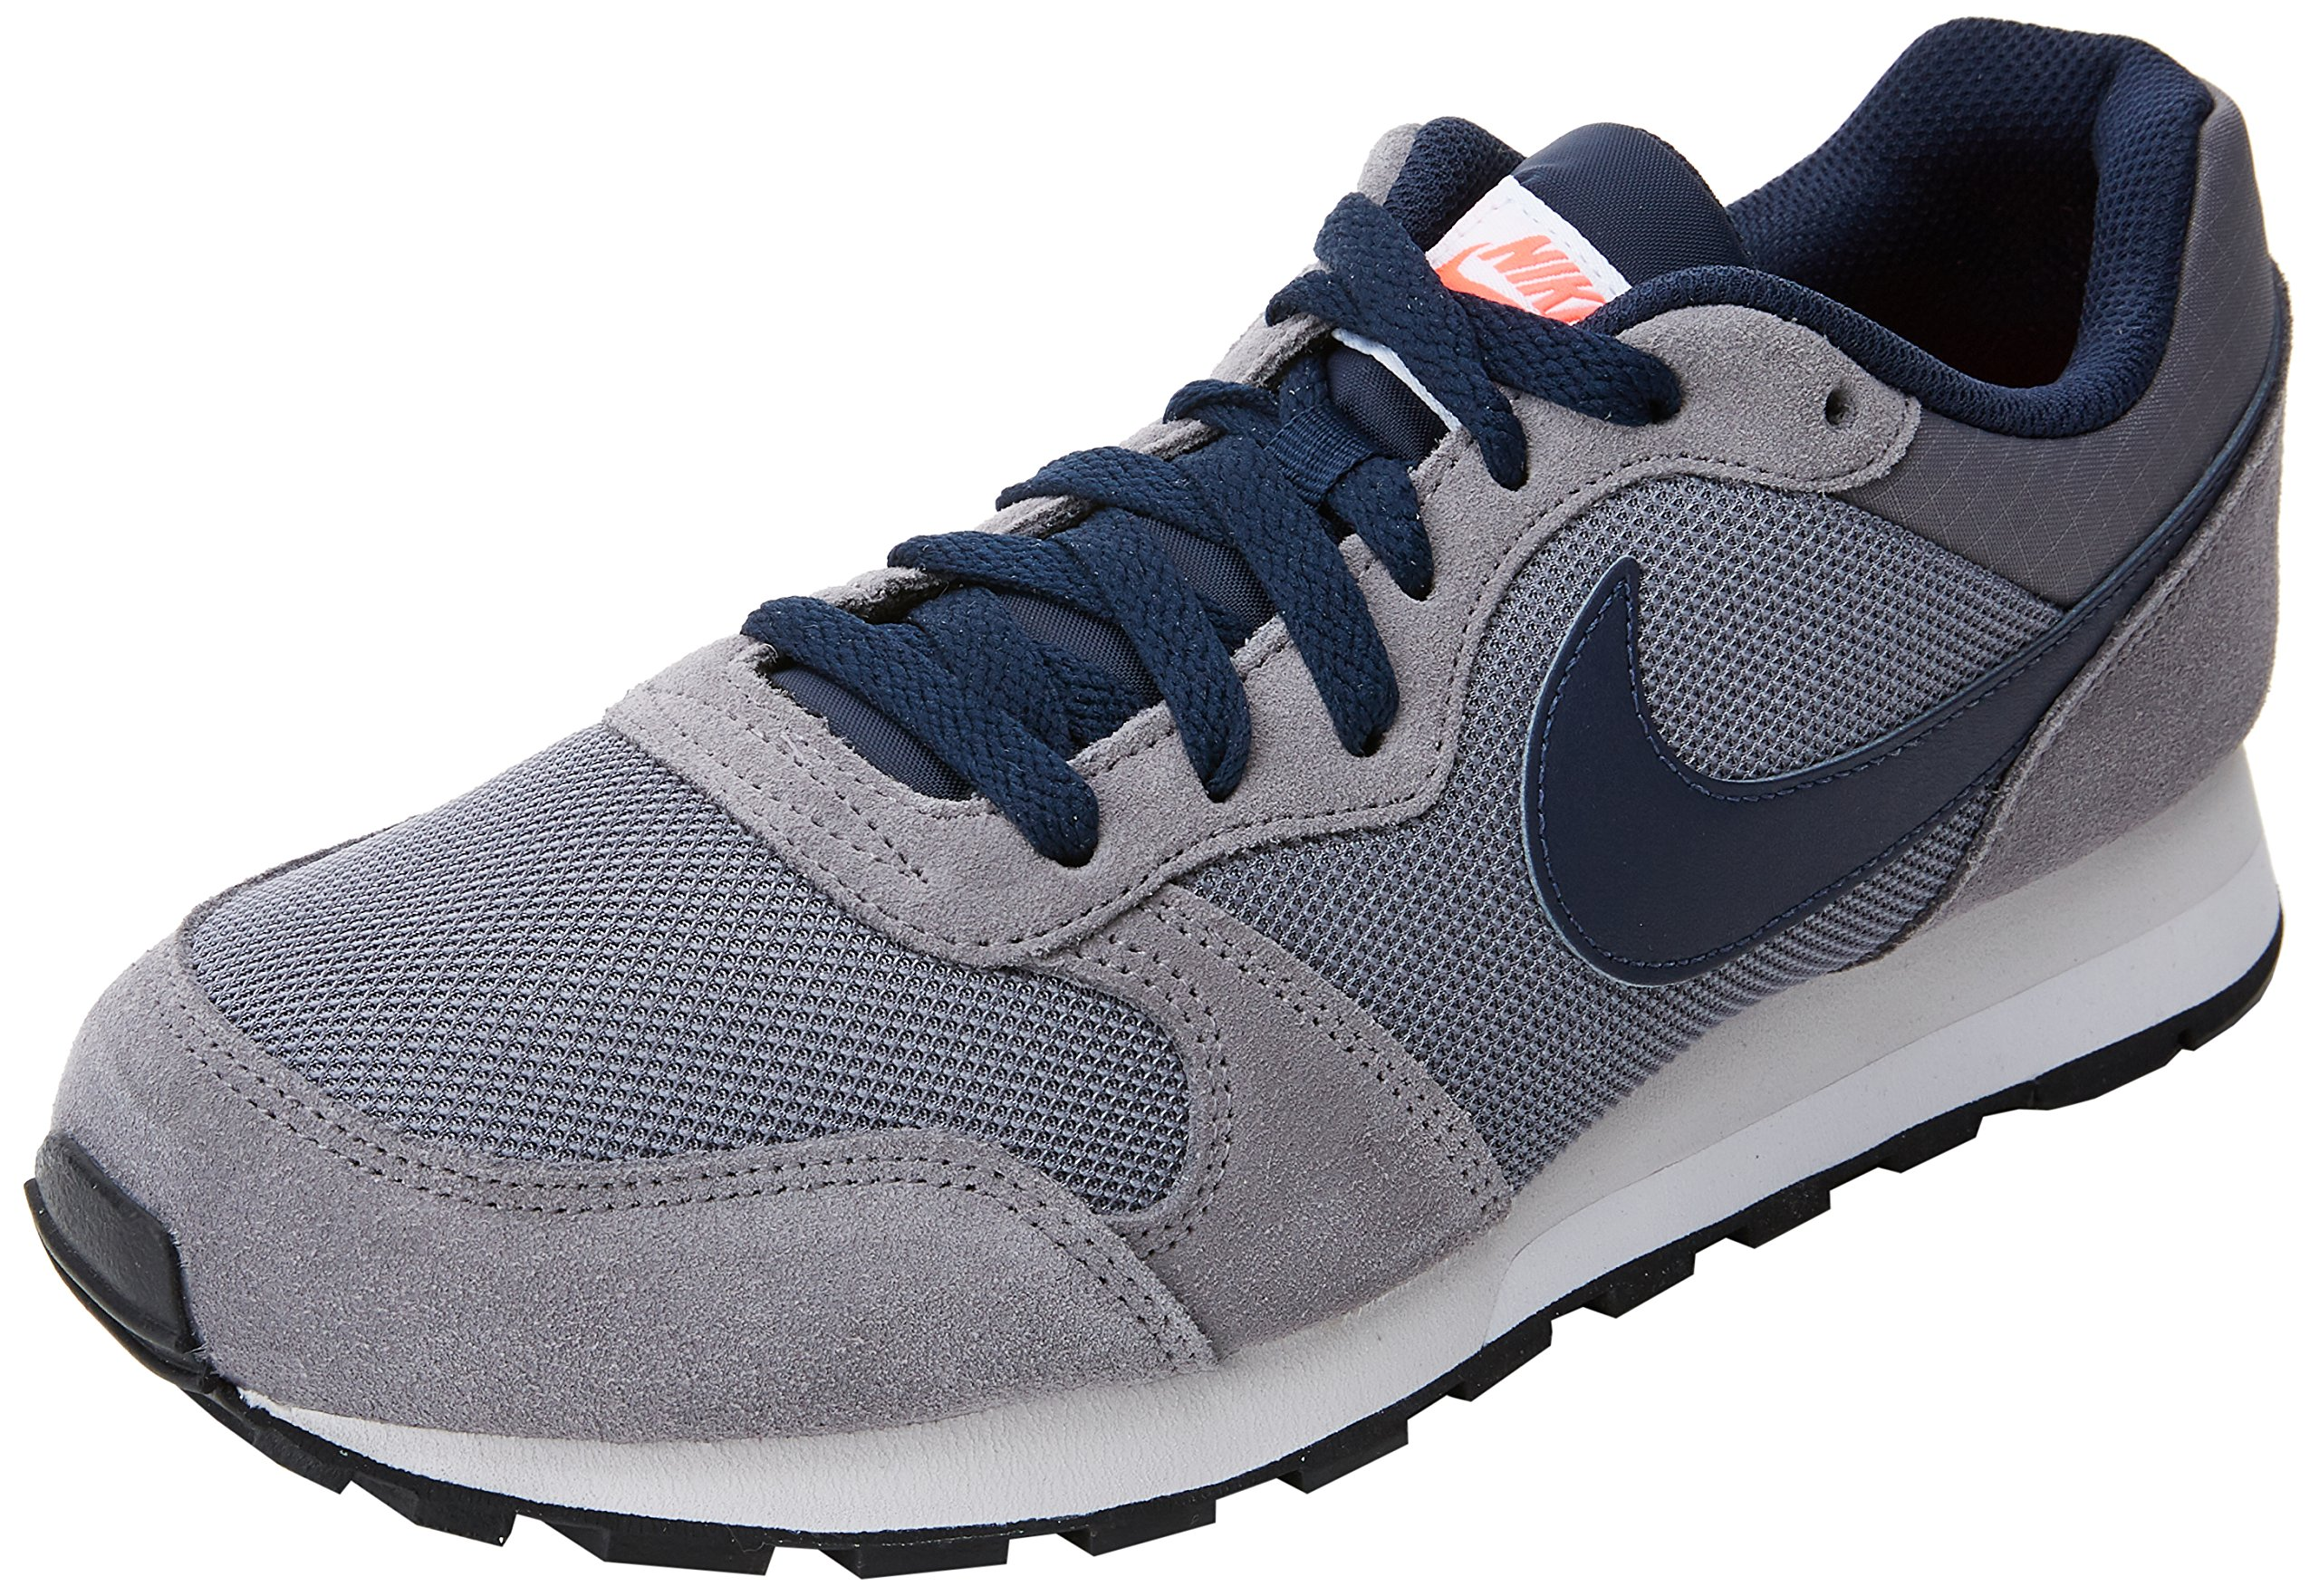 Md Nike Running Eu 5 vast 2Chaussures obsidian Runner Punch hot Grey HommeGrisgunsmoke 00740 De uKTJ1Fcl3